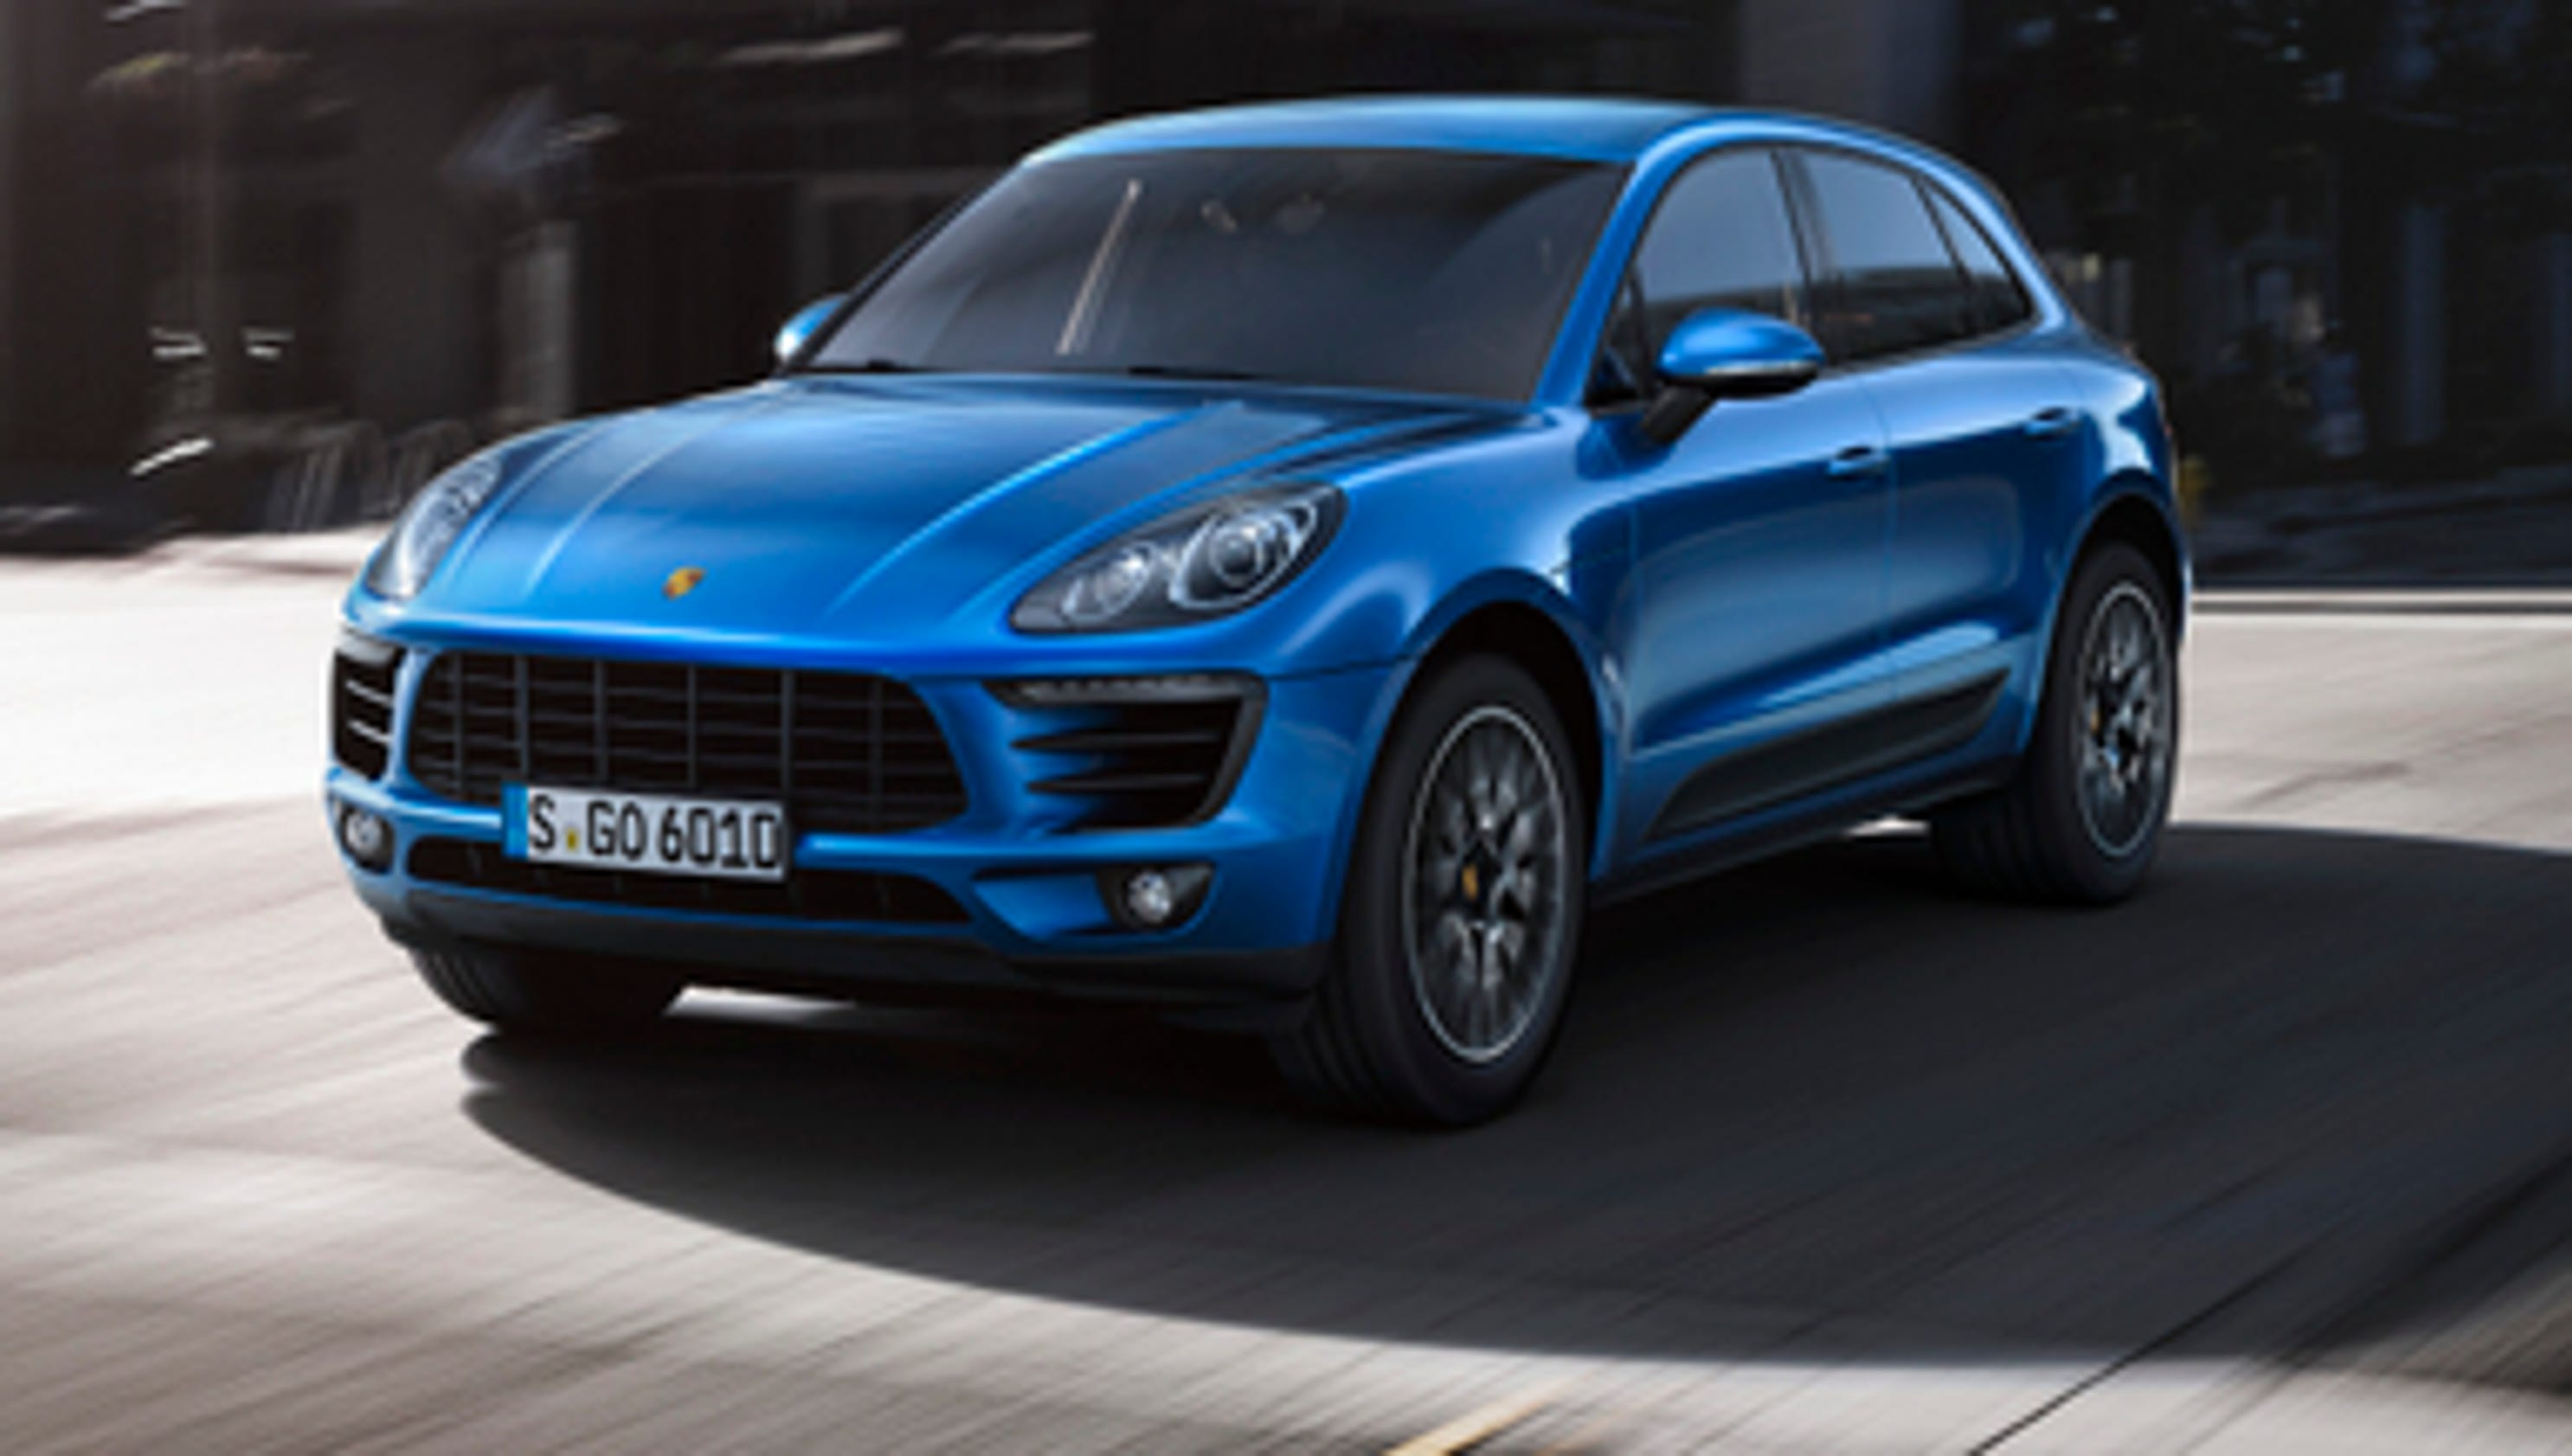 the new porsche macan compact crossover suv. Black Bedroom Furniture Sets. Home Design Ideas